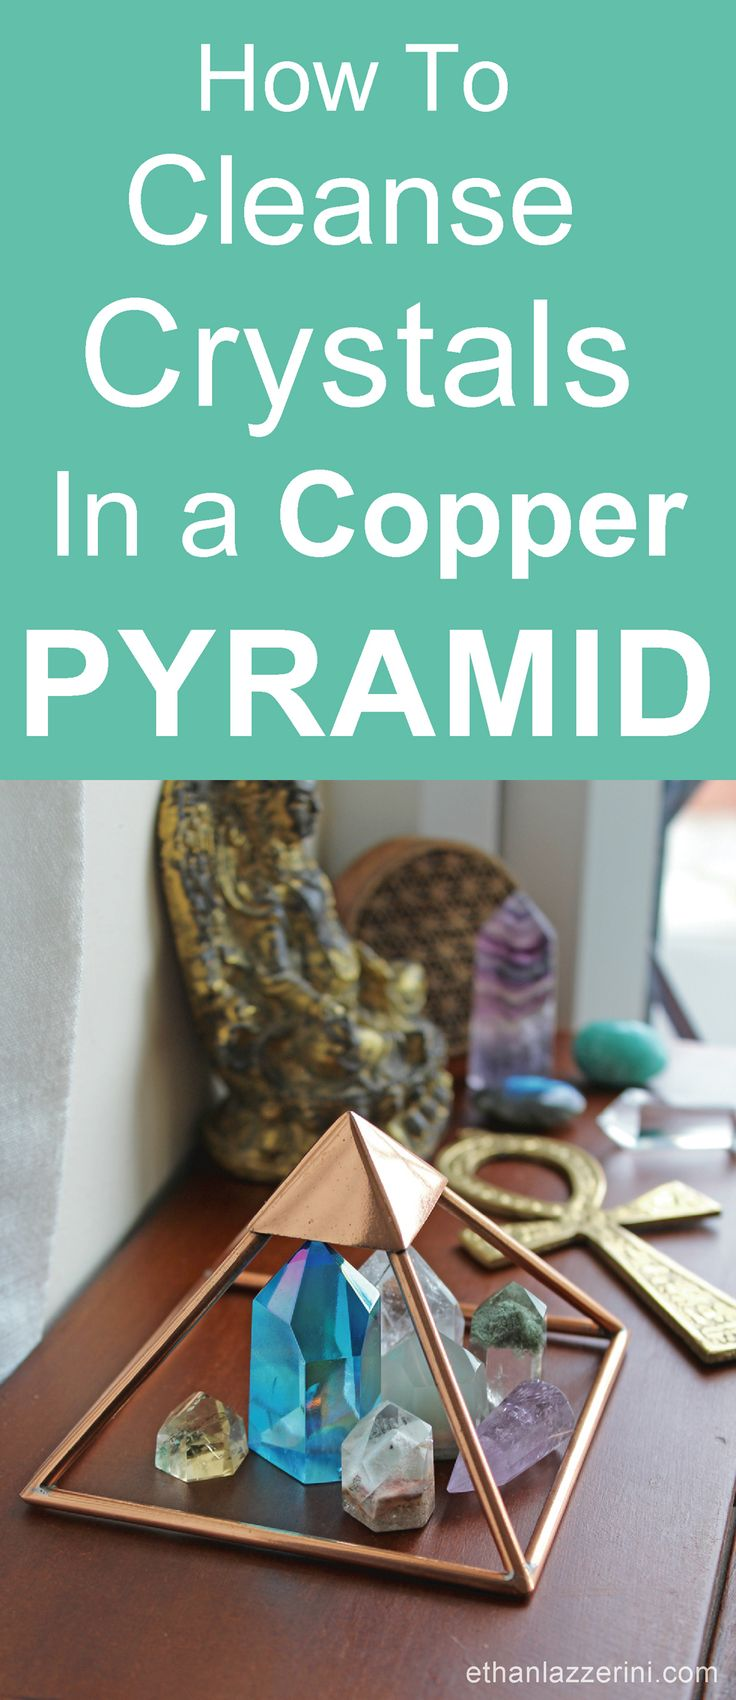 Learn how to cleanse, energize and charge crystals in a Copper Pyramid. Use pyramid power for healing crystals and crystal grids. Also known as Charging Pyramids and Healing Pyramids. #crystalhealing